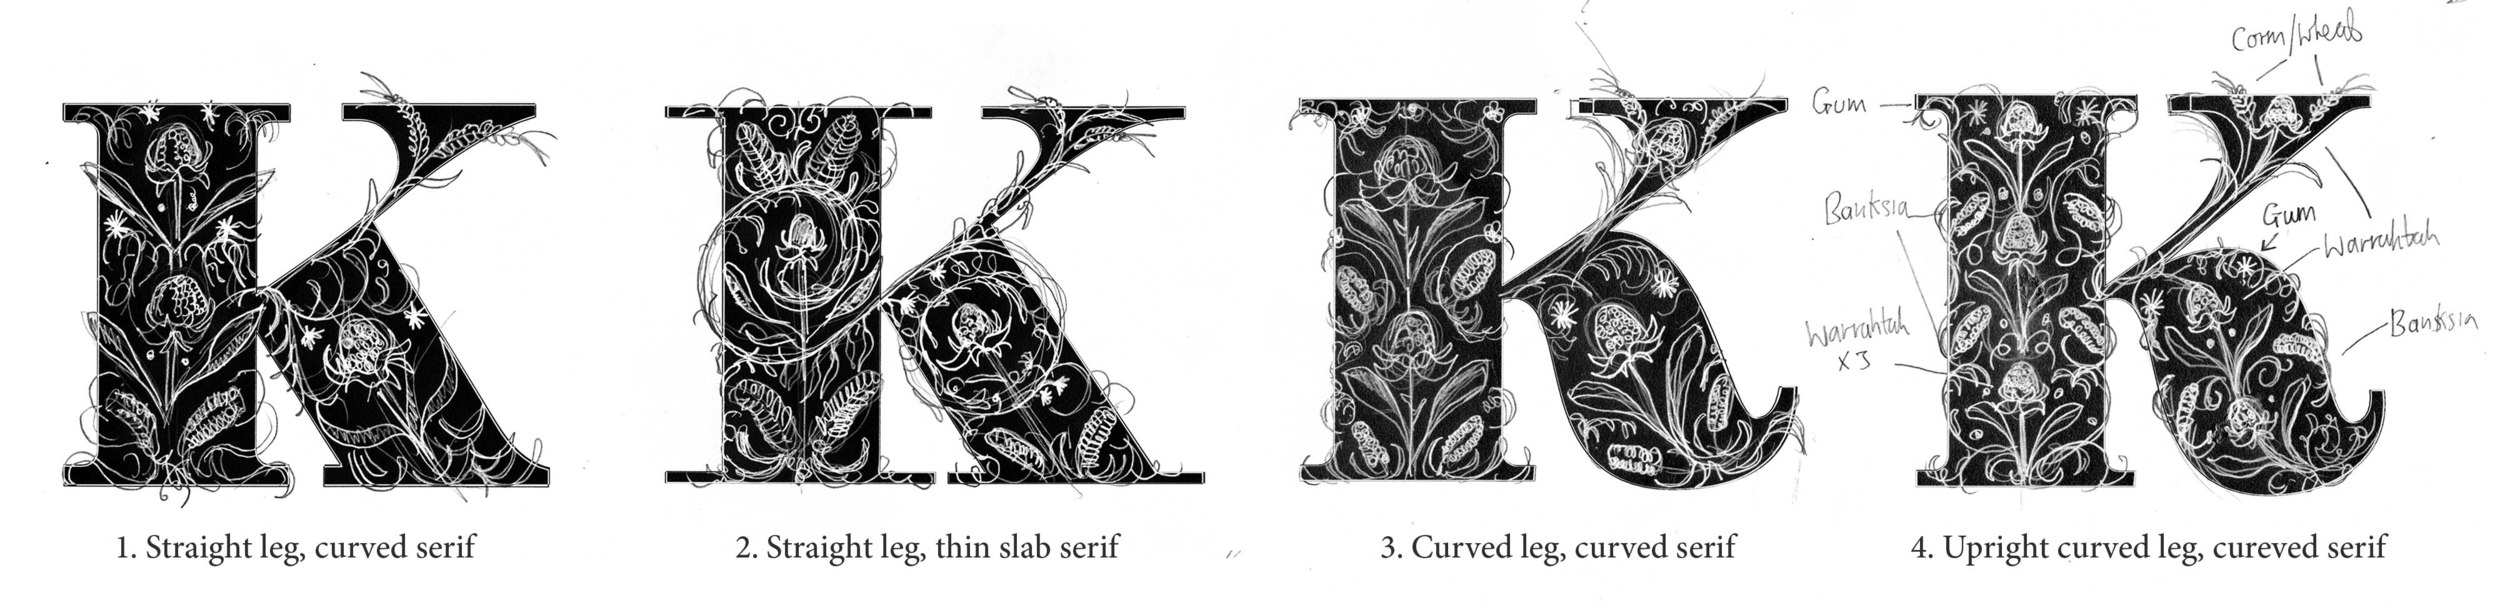 Early stage sketches exploring the various letterforms